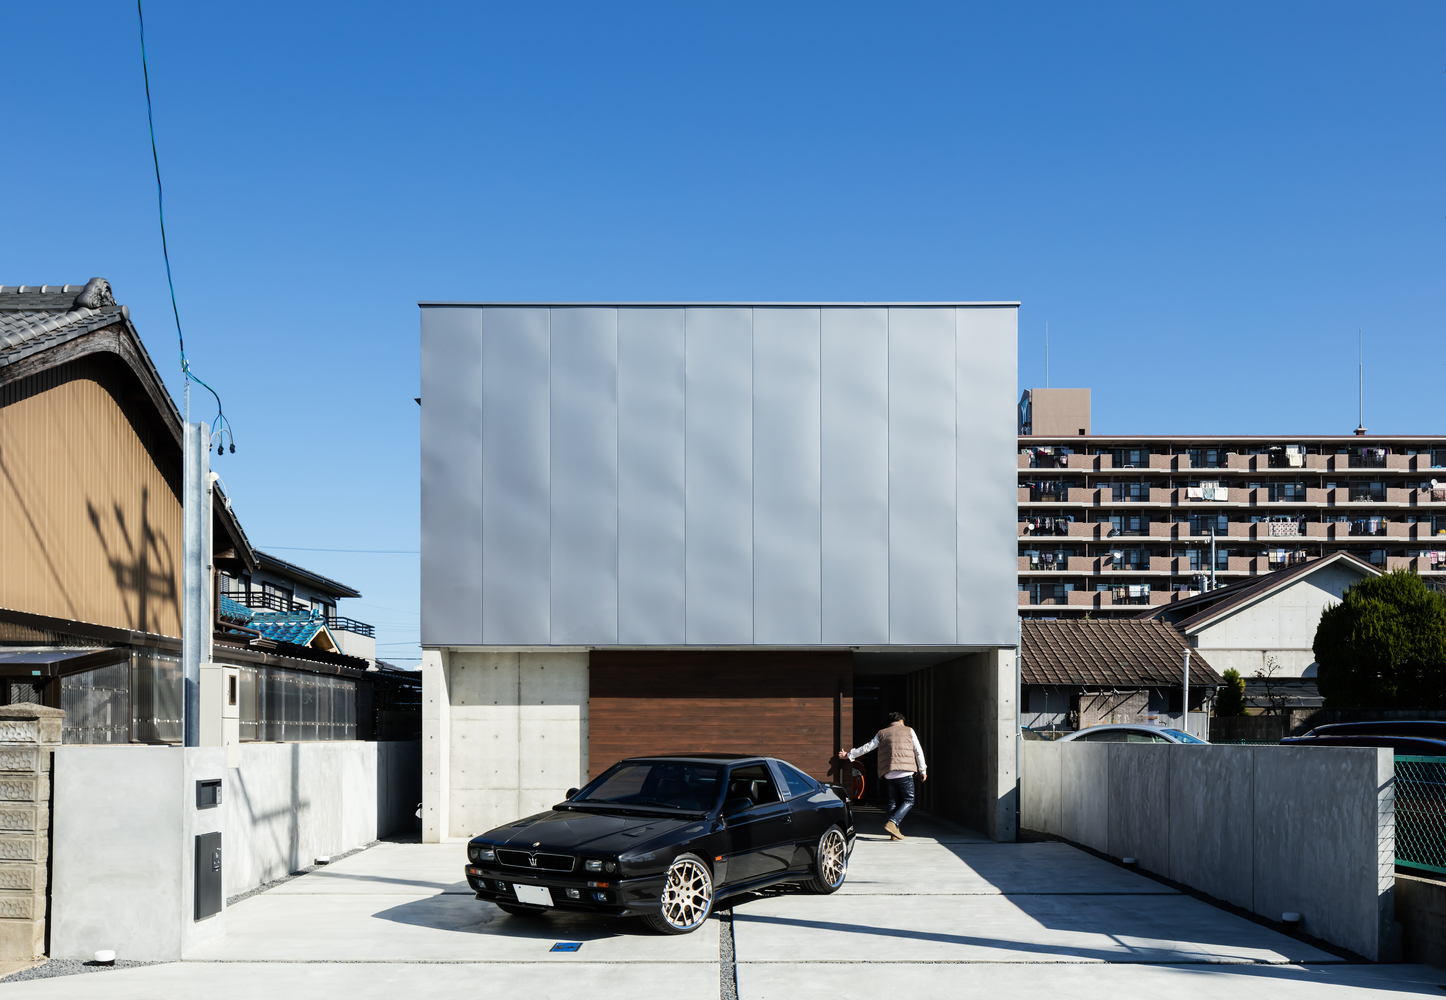 Garage House in Kawagoe / Horibe Associates